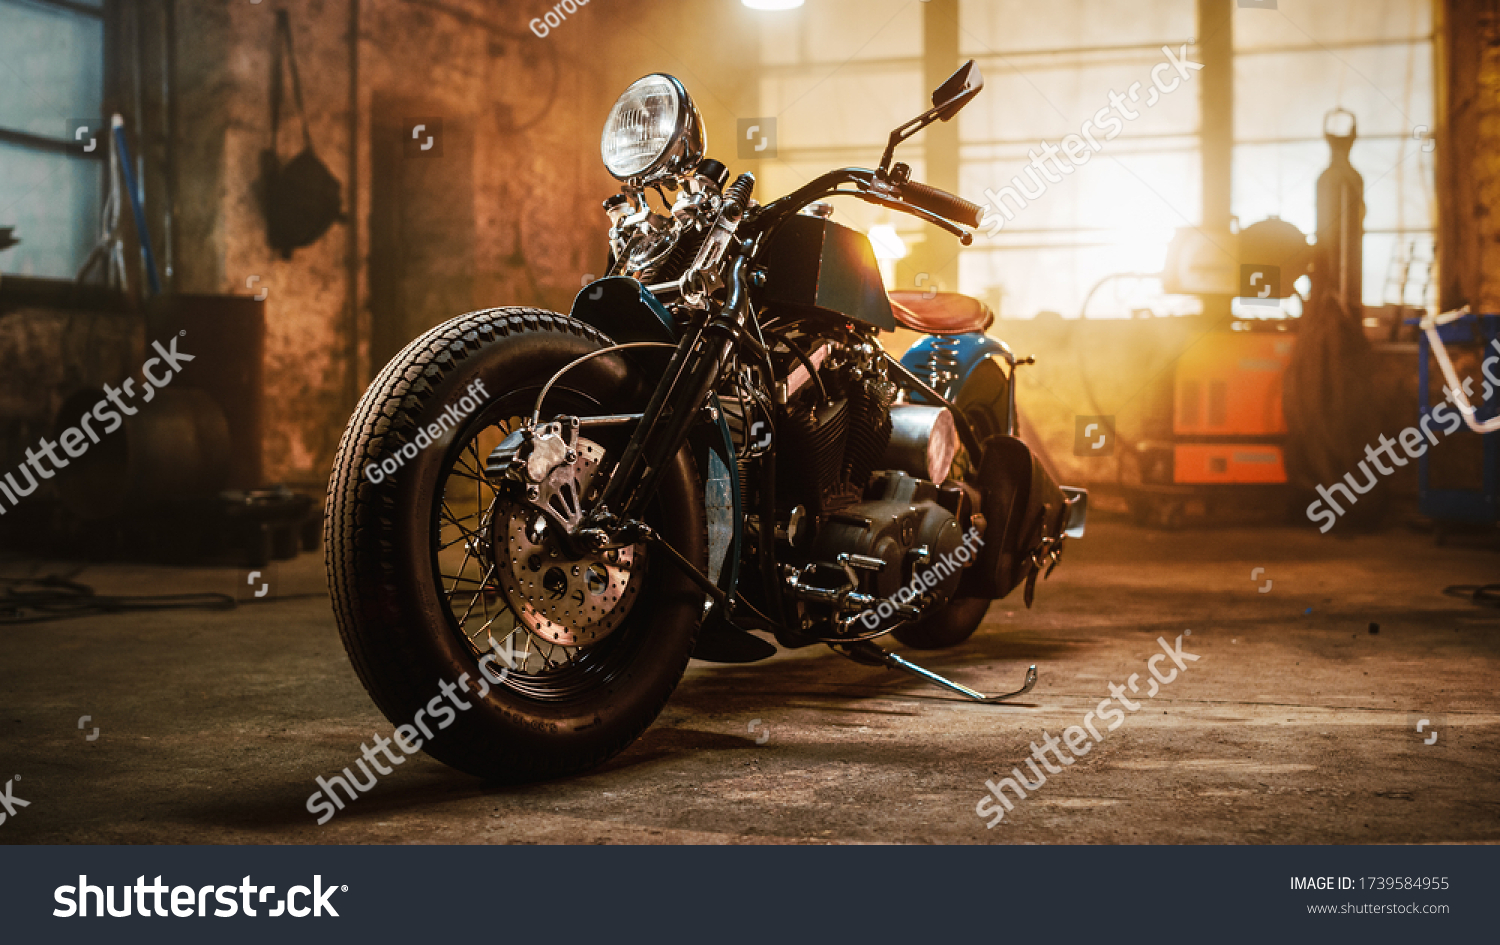 Custom Bobber Motorbike Standing in an Authentic Creative Workshop. Vintage Style Motorcycle Under Warm Lamp Light in a Garage. #1739584955